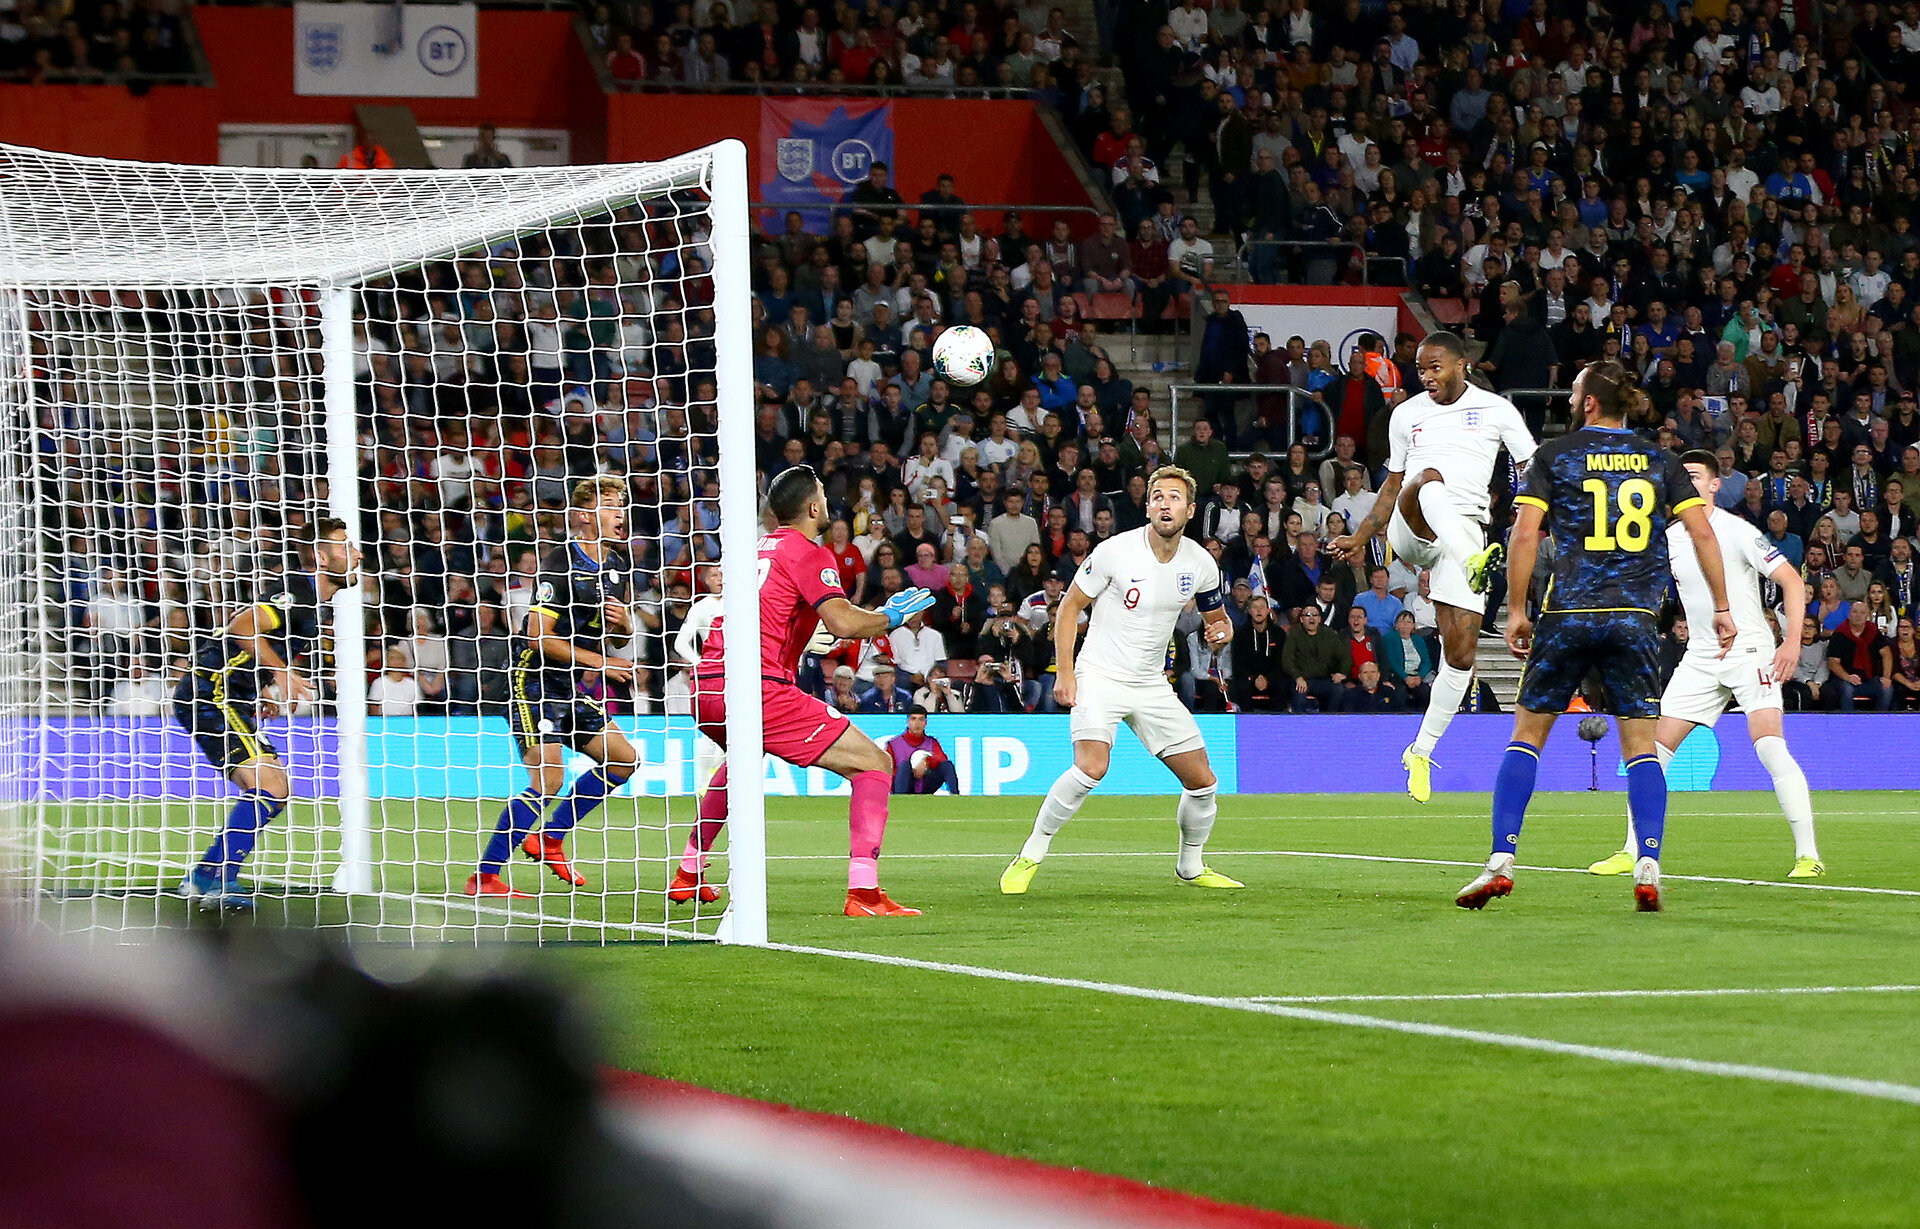 SOUTHAMPTON, ENGLAND - SEPTEMBER 10: Raheem Sterling(7) of England scores with his head to make it 1-1 during the UEFA Euro 2020 qualifier match between England and Kosovo at St. Mary's Stadium on September 10, 2019 in Southampton, England. (Photo by Matt Watson/Southampton FC via Getty Images)